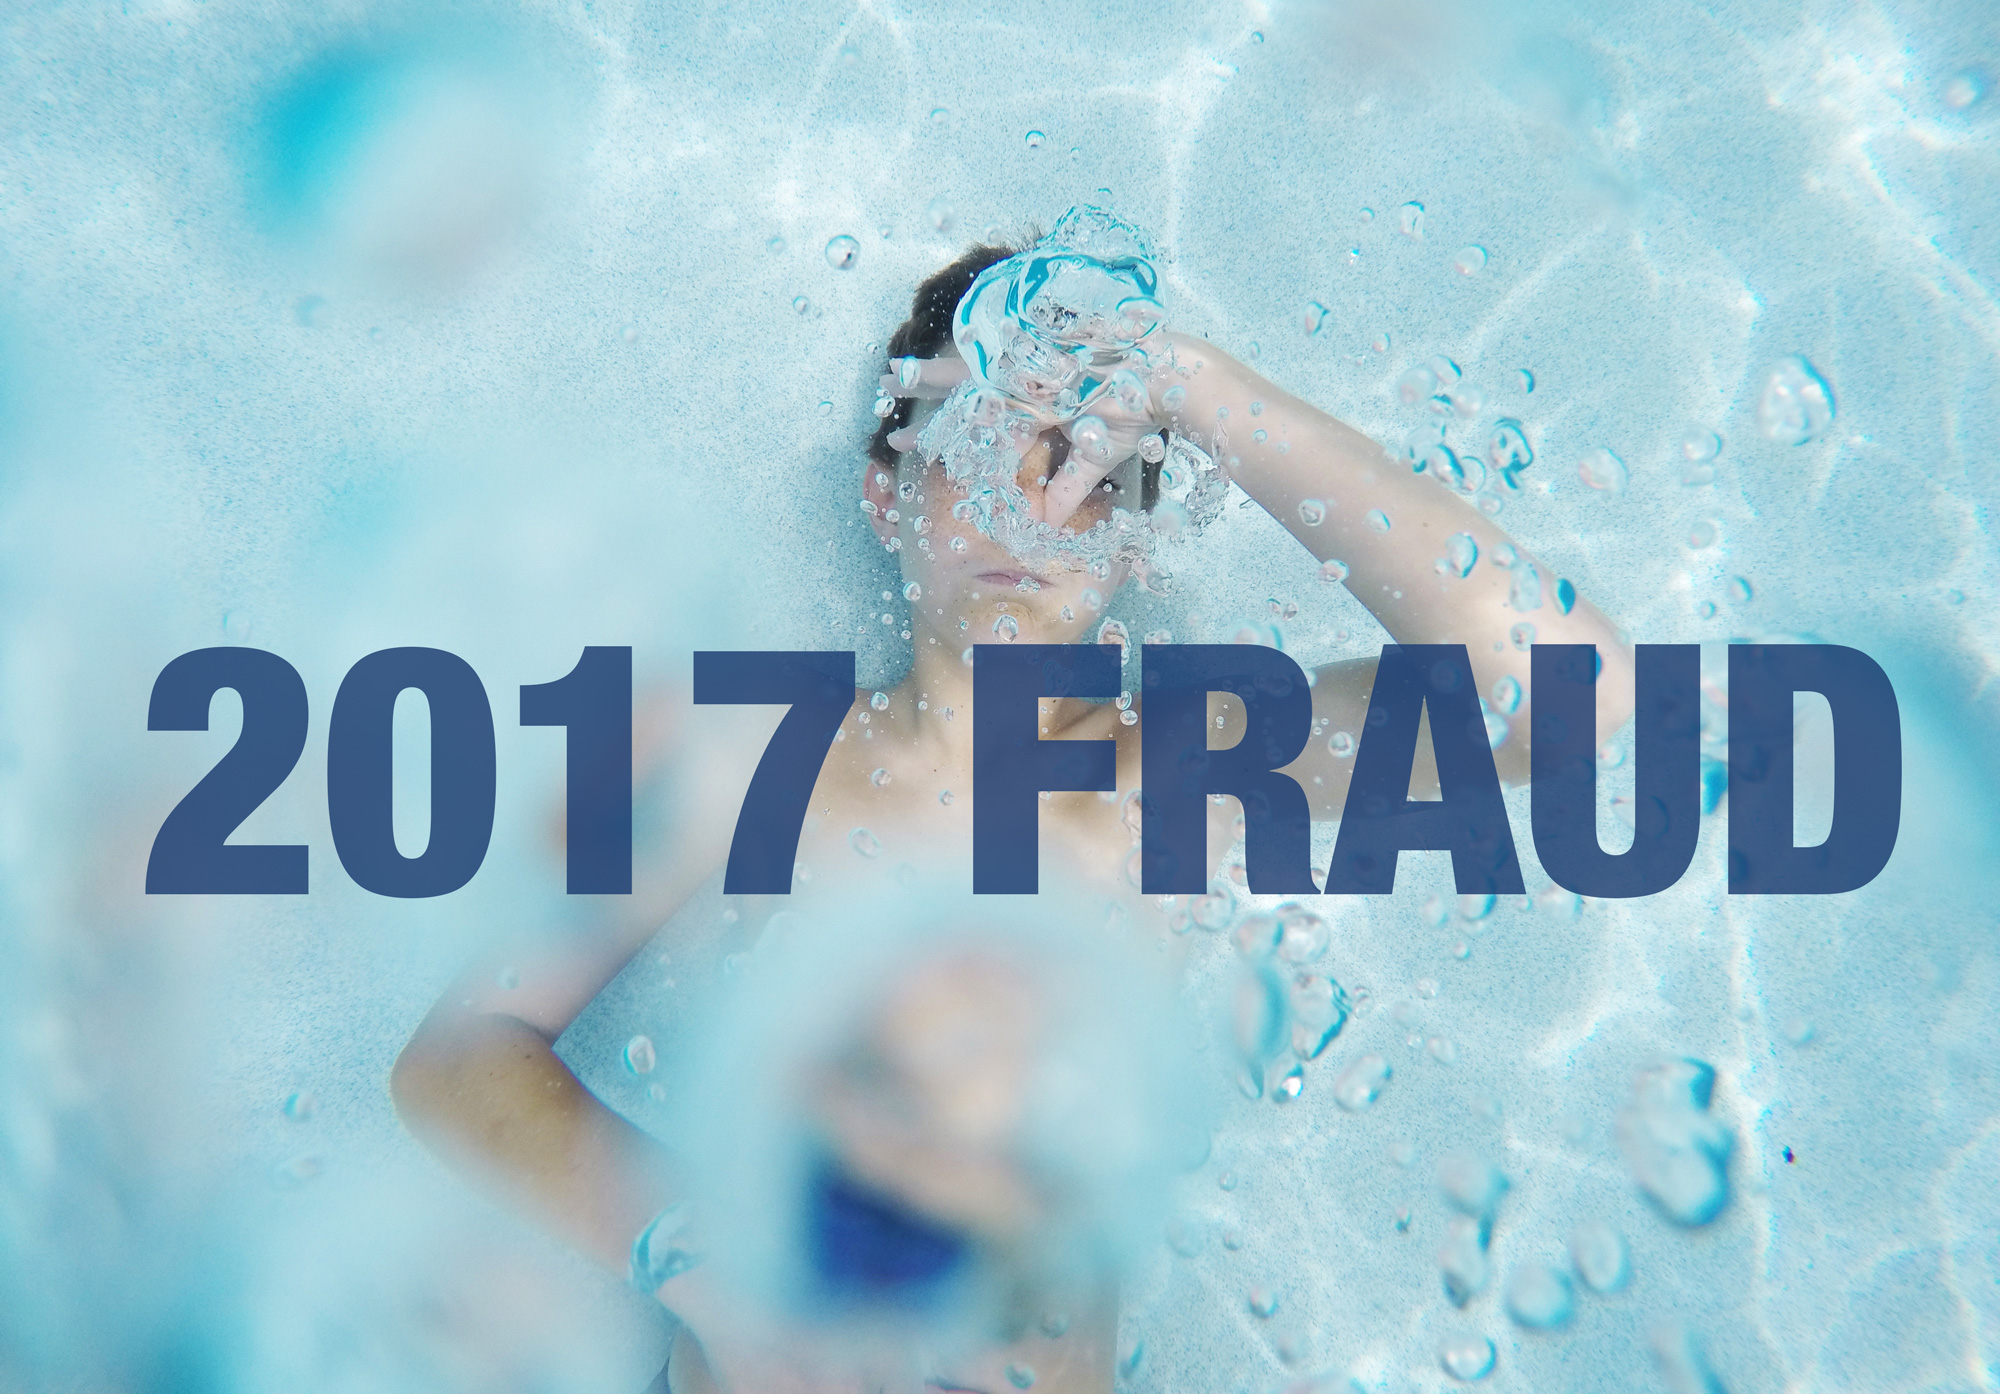 Top 10 Fraud Types for 2017 Based on Losses – Frank on Fraud